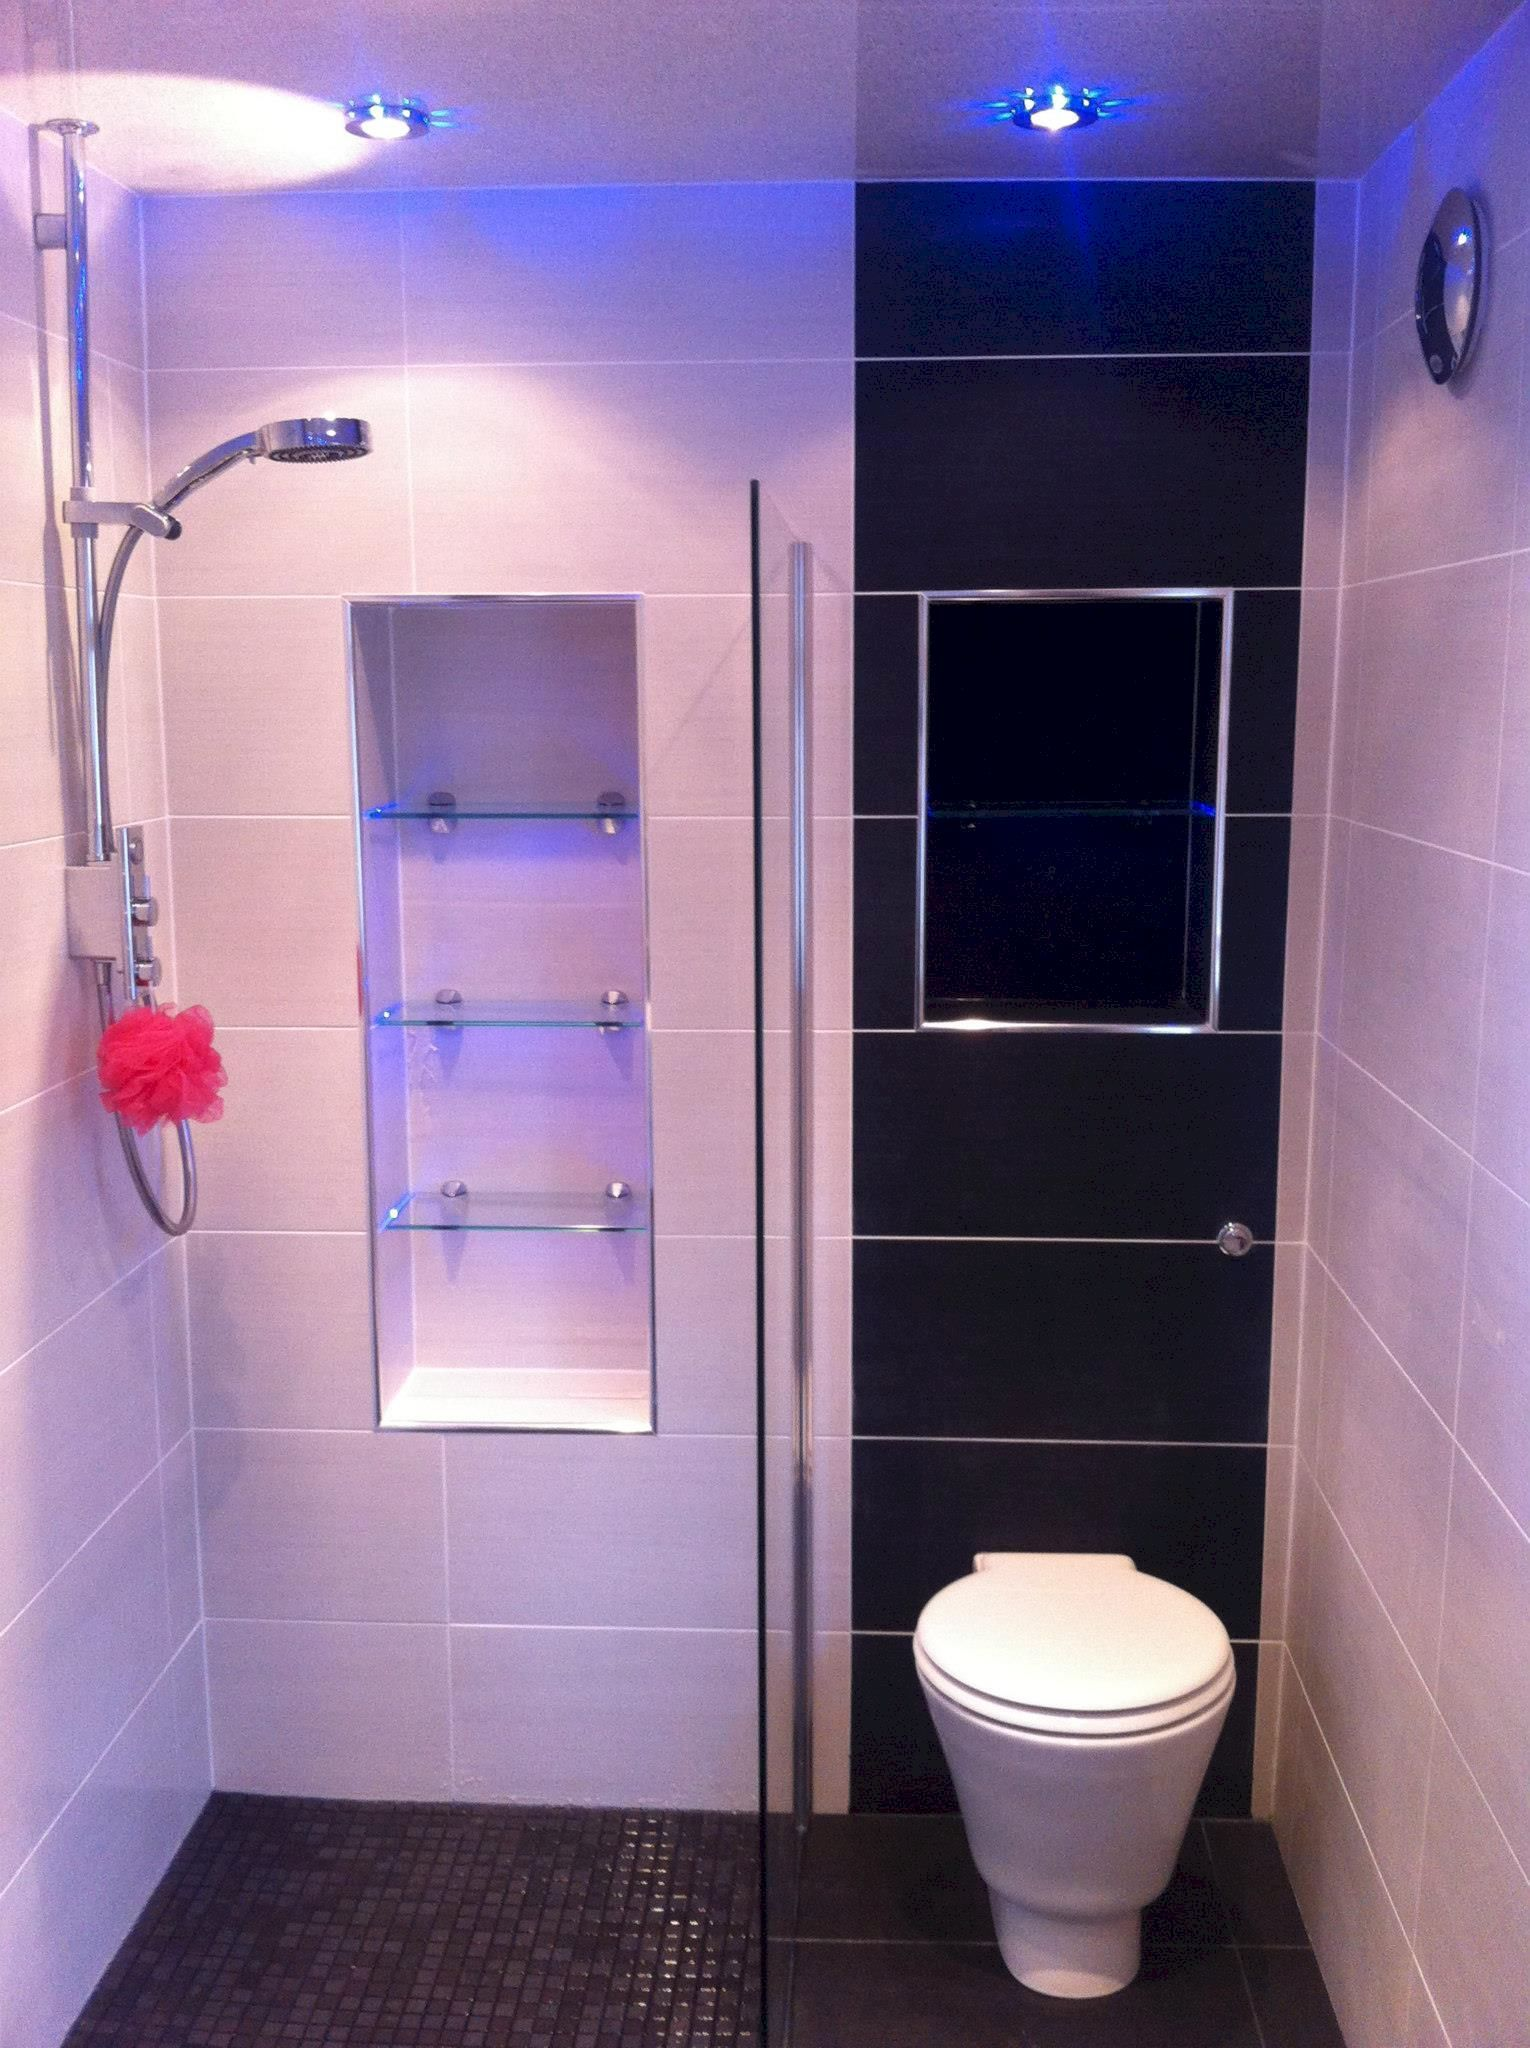 50 Stunning Wet Room Design Ideas #wetrooms